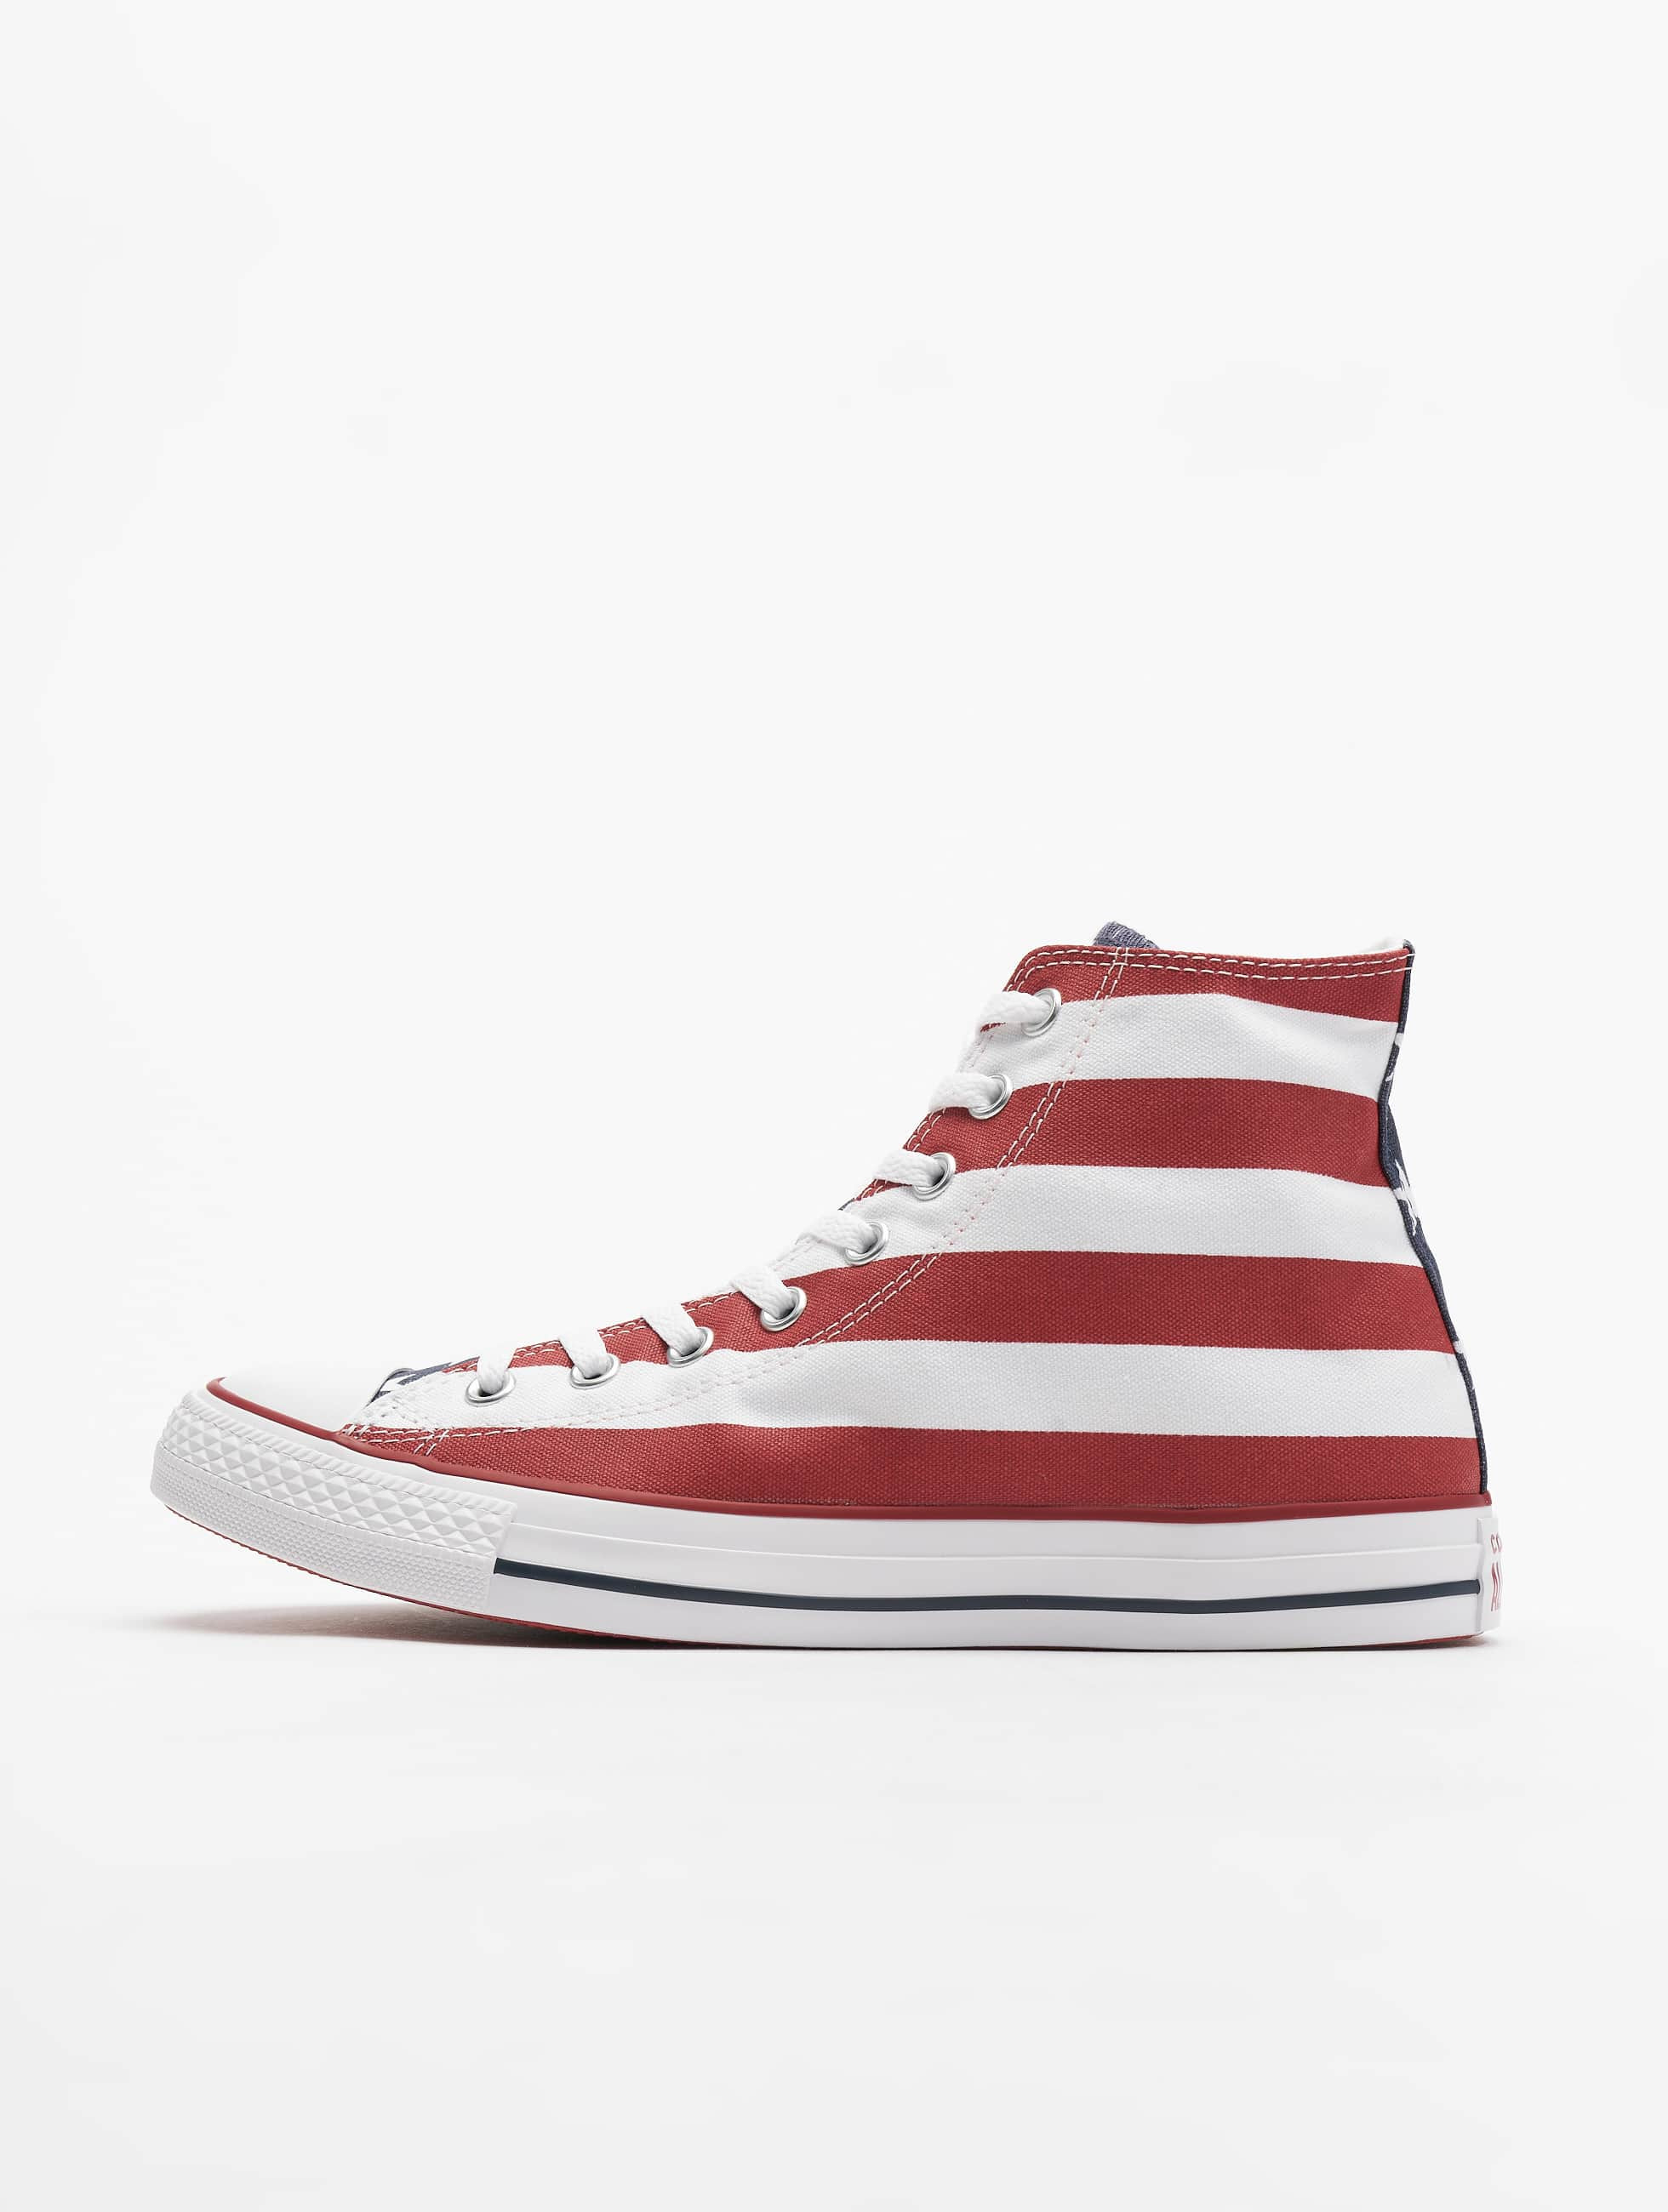 44f8d5bd028 Converse schoen / sneaker All Star Stars & Bars Hi in bont 673844